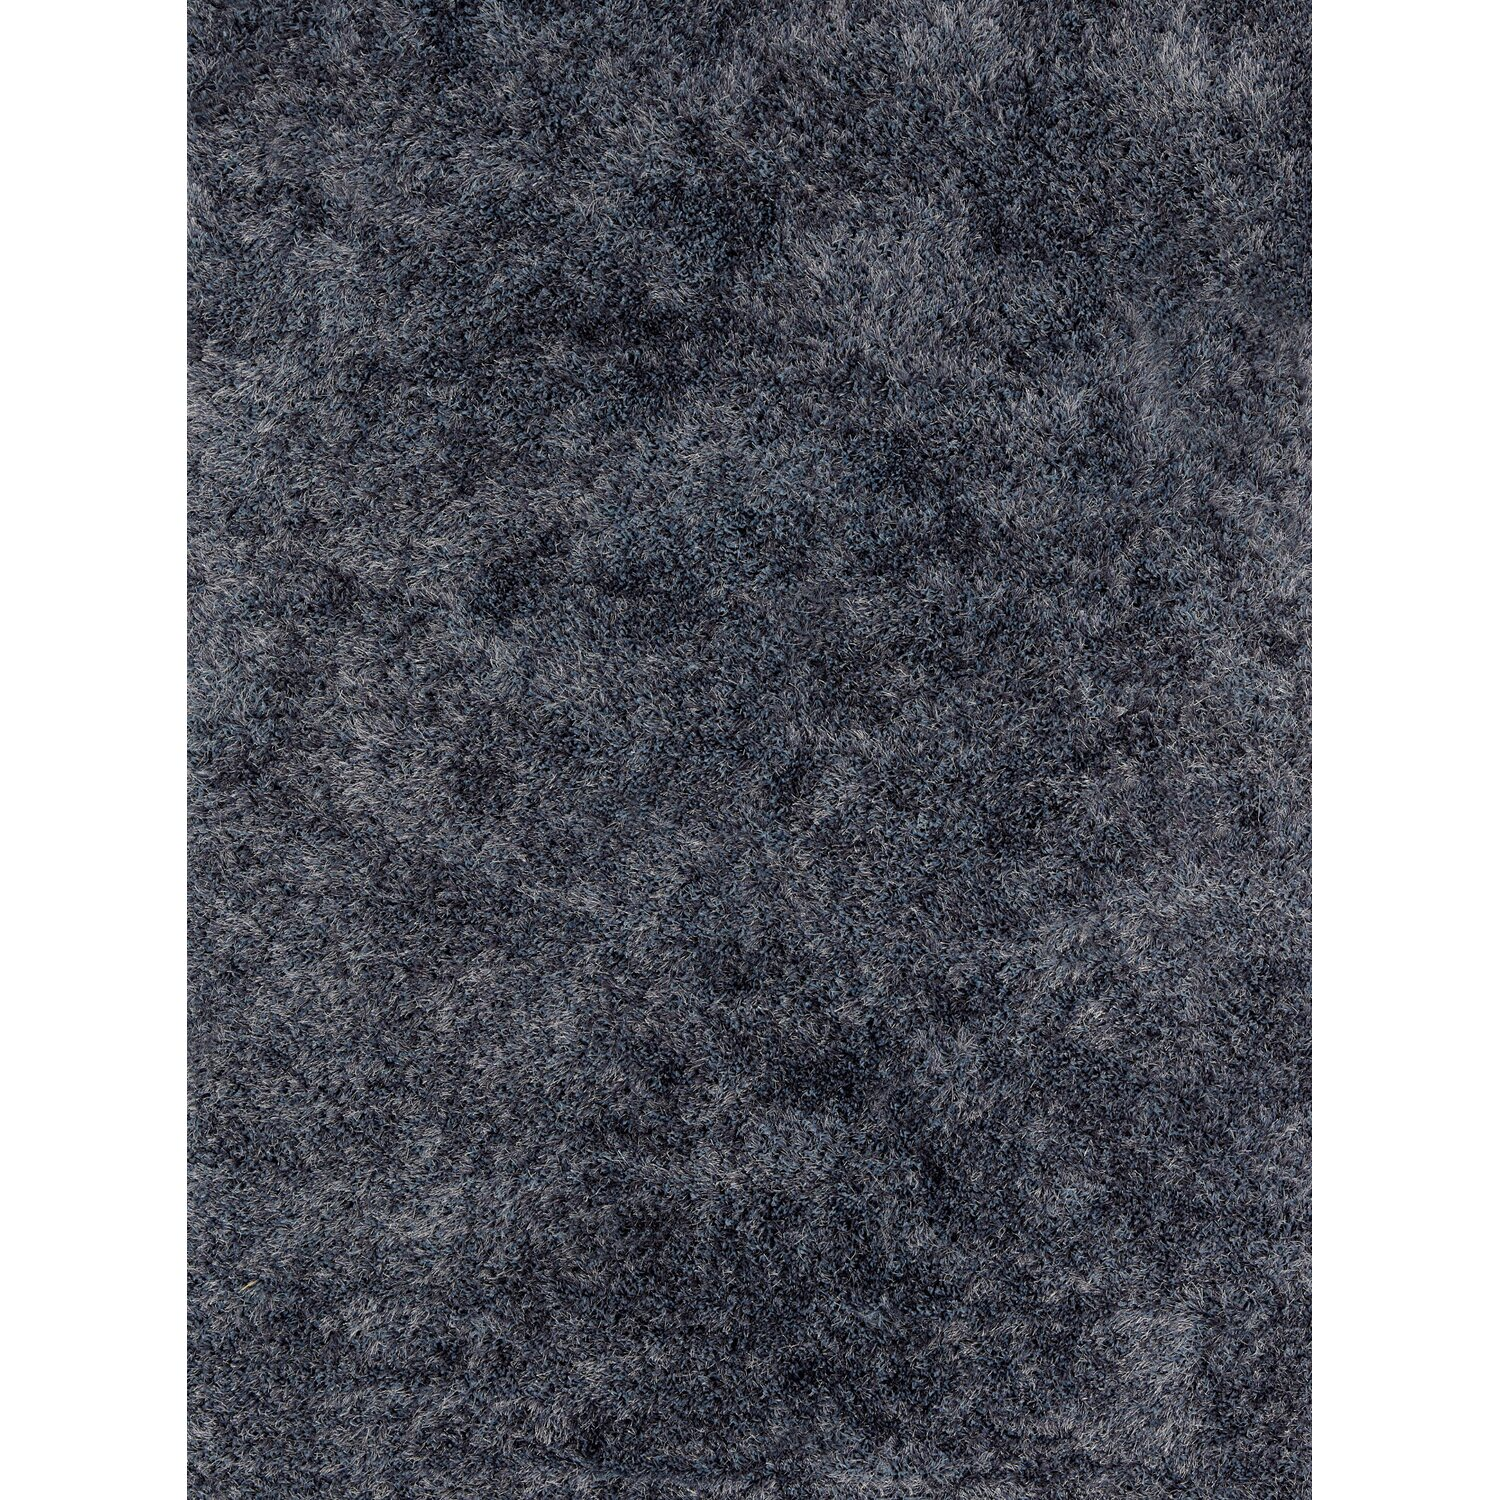 bb home passion Barbara Becker Teppich Emotion 70 cm x 140 cm Blau